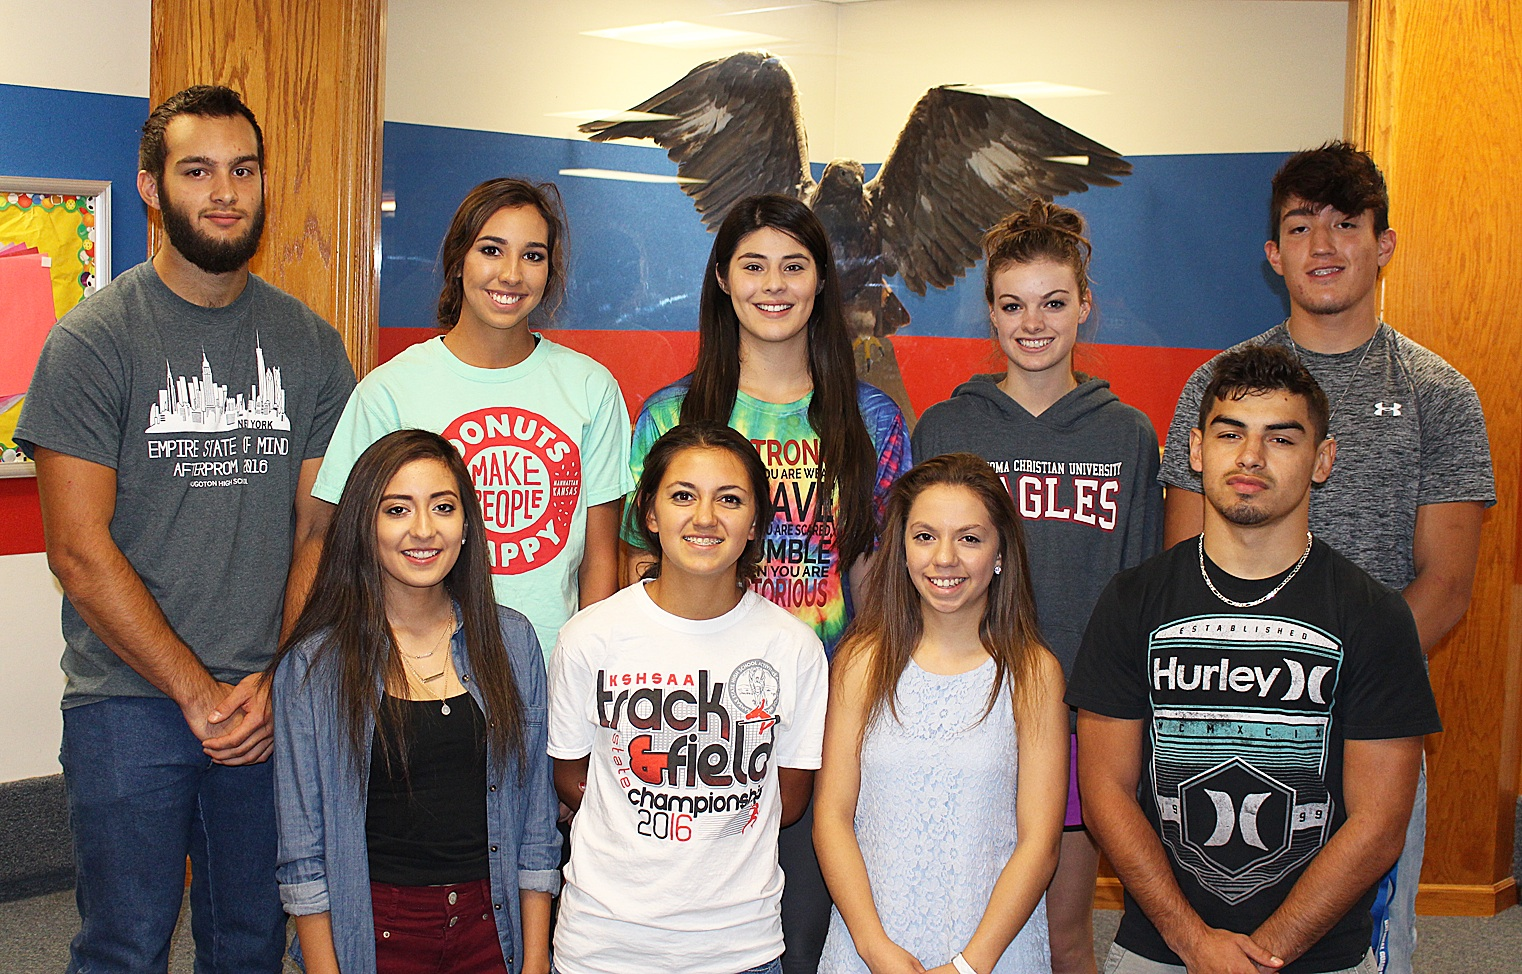 Homecoming 2016 is October 7! HHS is proud to announce the 2016 Football Homecoming Court. Front row left to right are Freshman Attendant Faith Degollado, Sophomore Attendant Abby Heger, Junior Attendant Madison Shuck, and Senior King Candidate Pedro Ordonez. In back are Senior King Candidate Romano Burger, Senior Queen Candidates Katy Heger, Melissa Fabela and Amy Scott, and Senior King Candidate Valentino Degollado. Not pictured are flower girl Brinlee Austin, daughter of Marie and Brian Austin and crown bearer Rowan Sullivan, son of Megan and Abel Sullivan. The coronation ceremony will be at 6:00 p.m. Friday prior to the kick off at 7:00 p.m. Congratulations to all! Photo courtesy of USD 210.